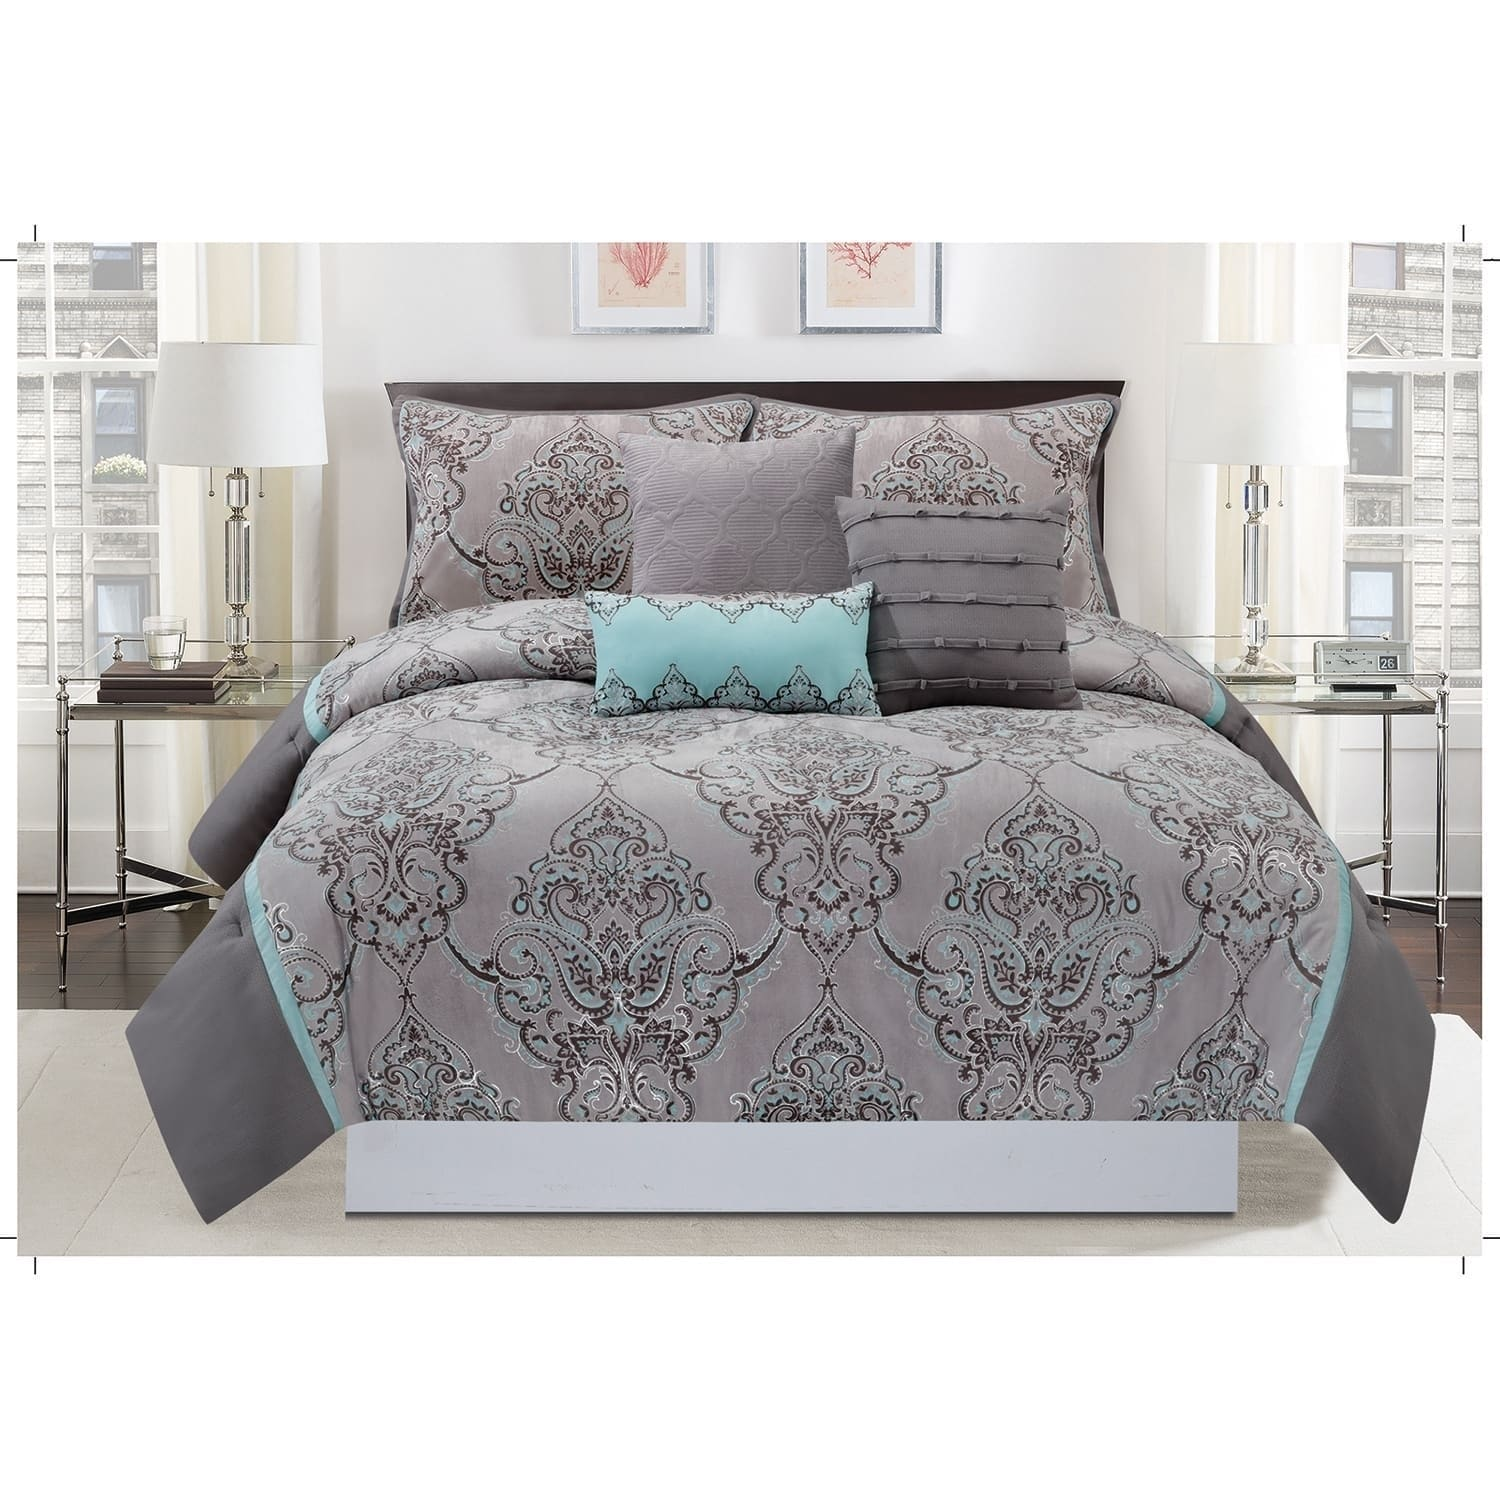 China Silver Sparkle 6 Piece comforter set (King), Brown ...